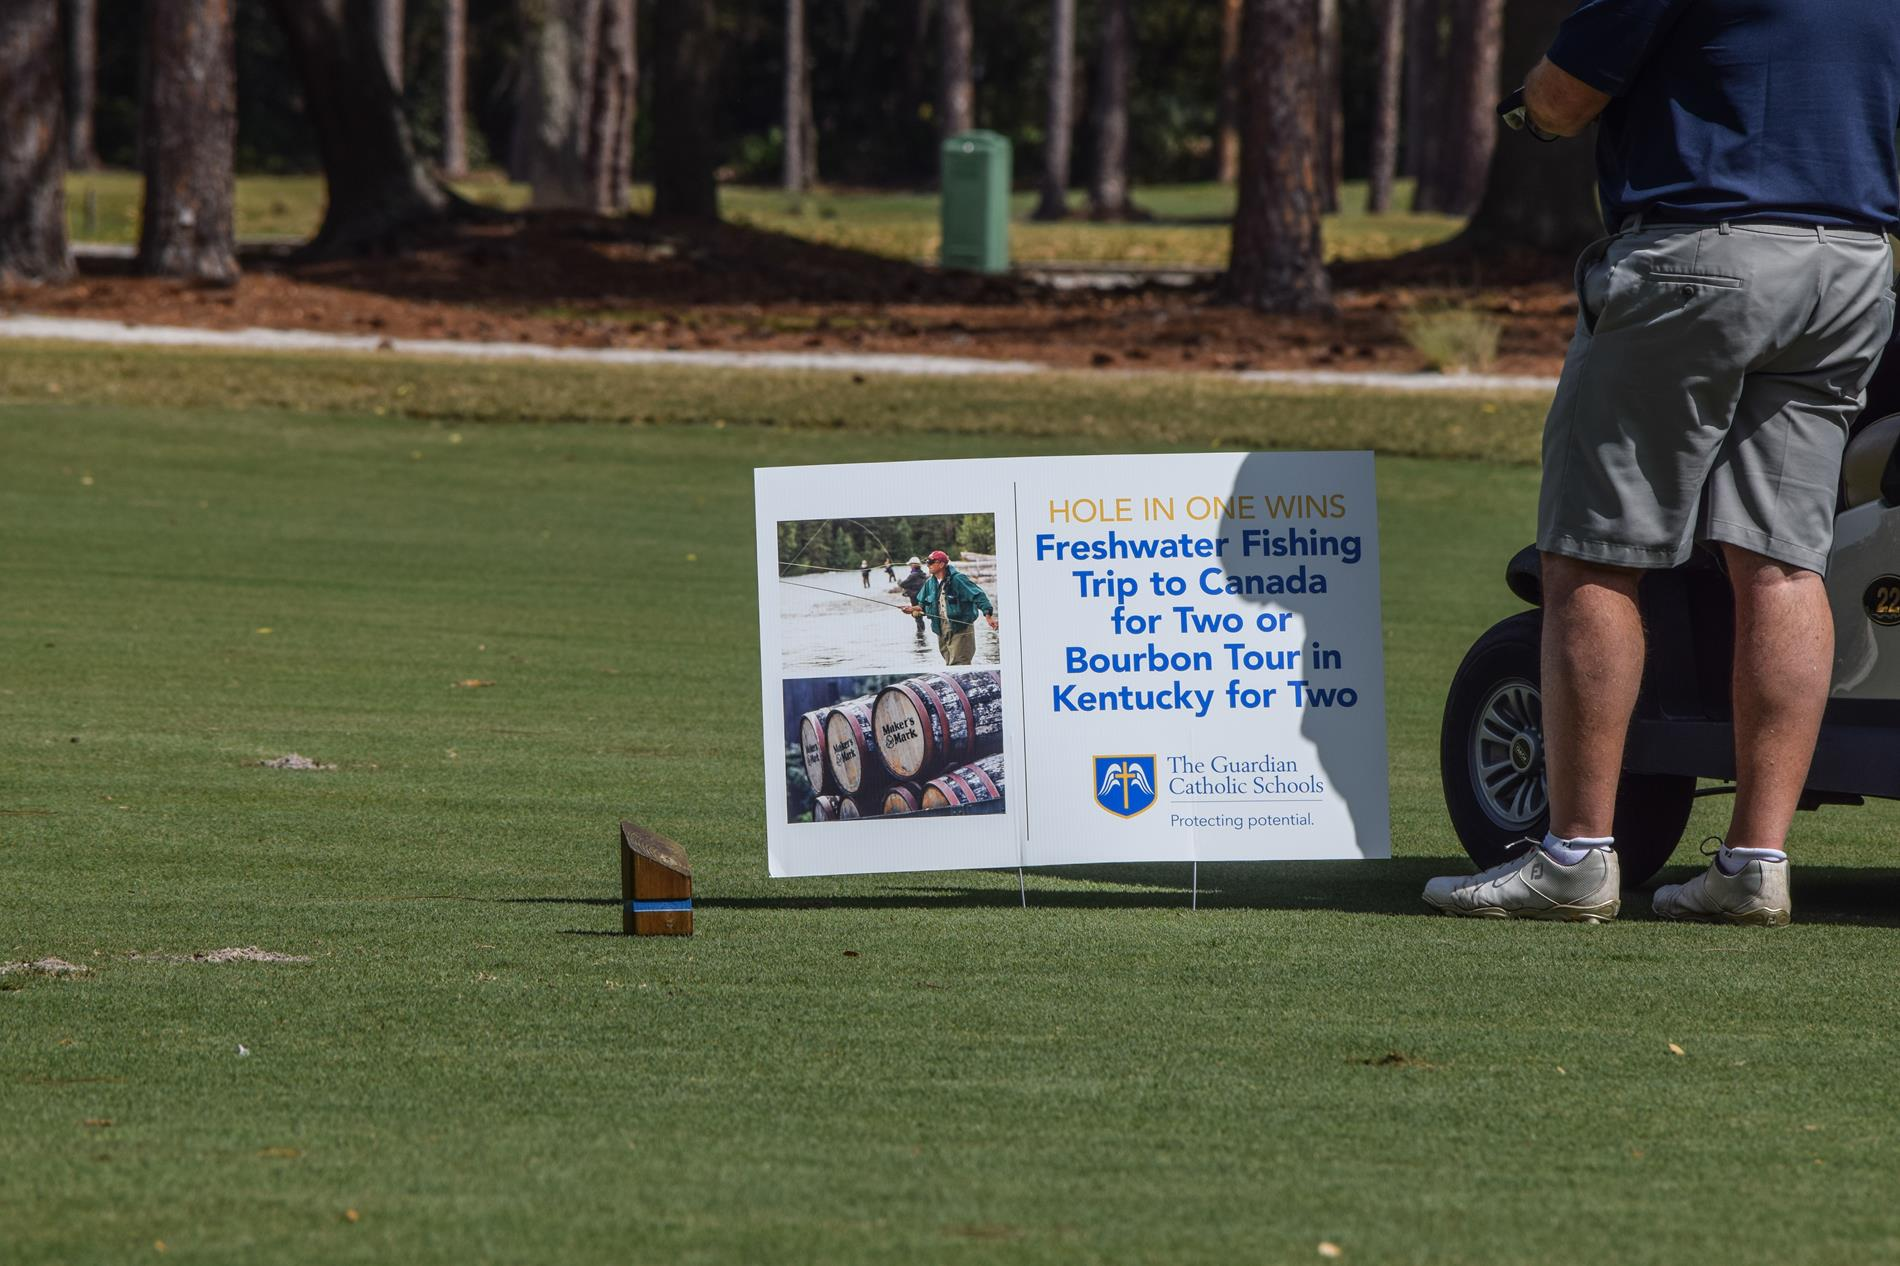 Guardian Catholic Advertisement on the Golf Course